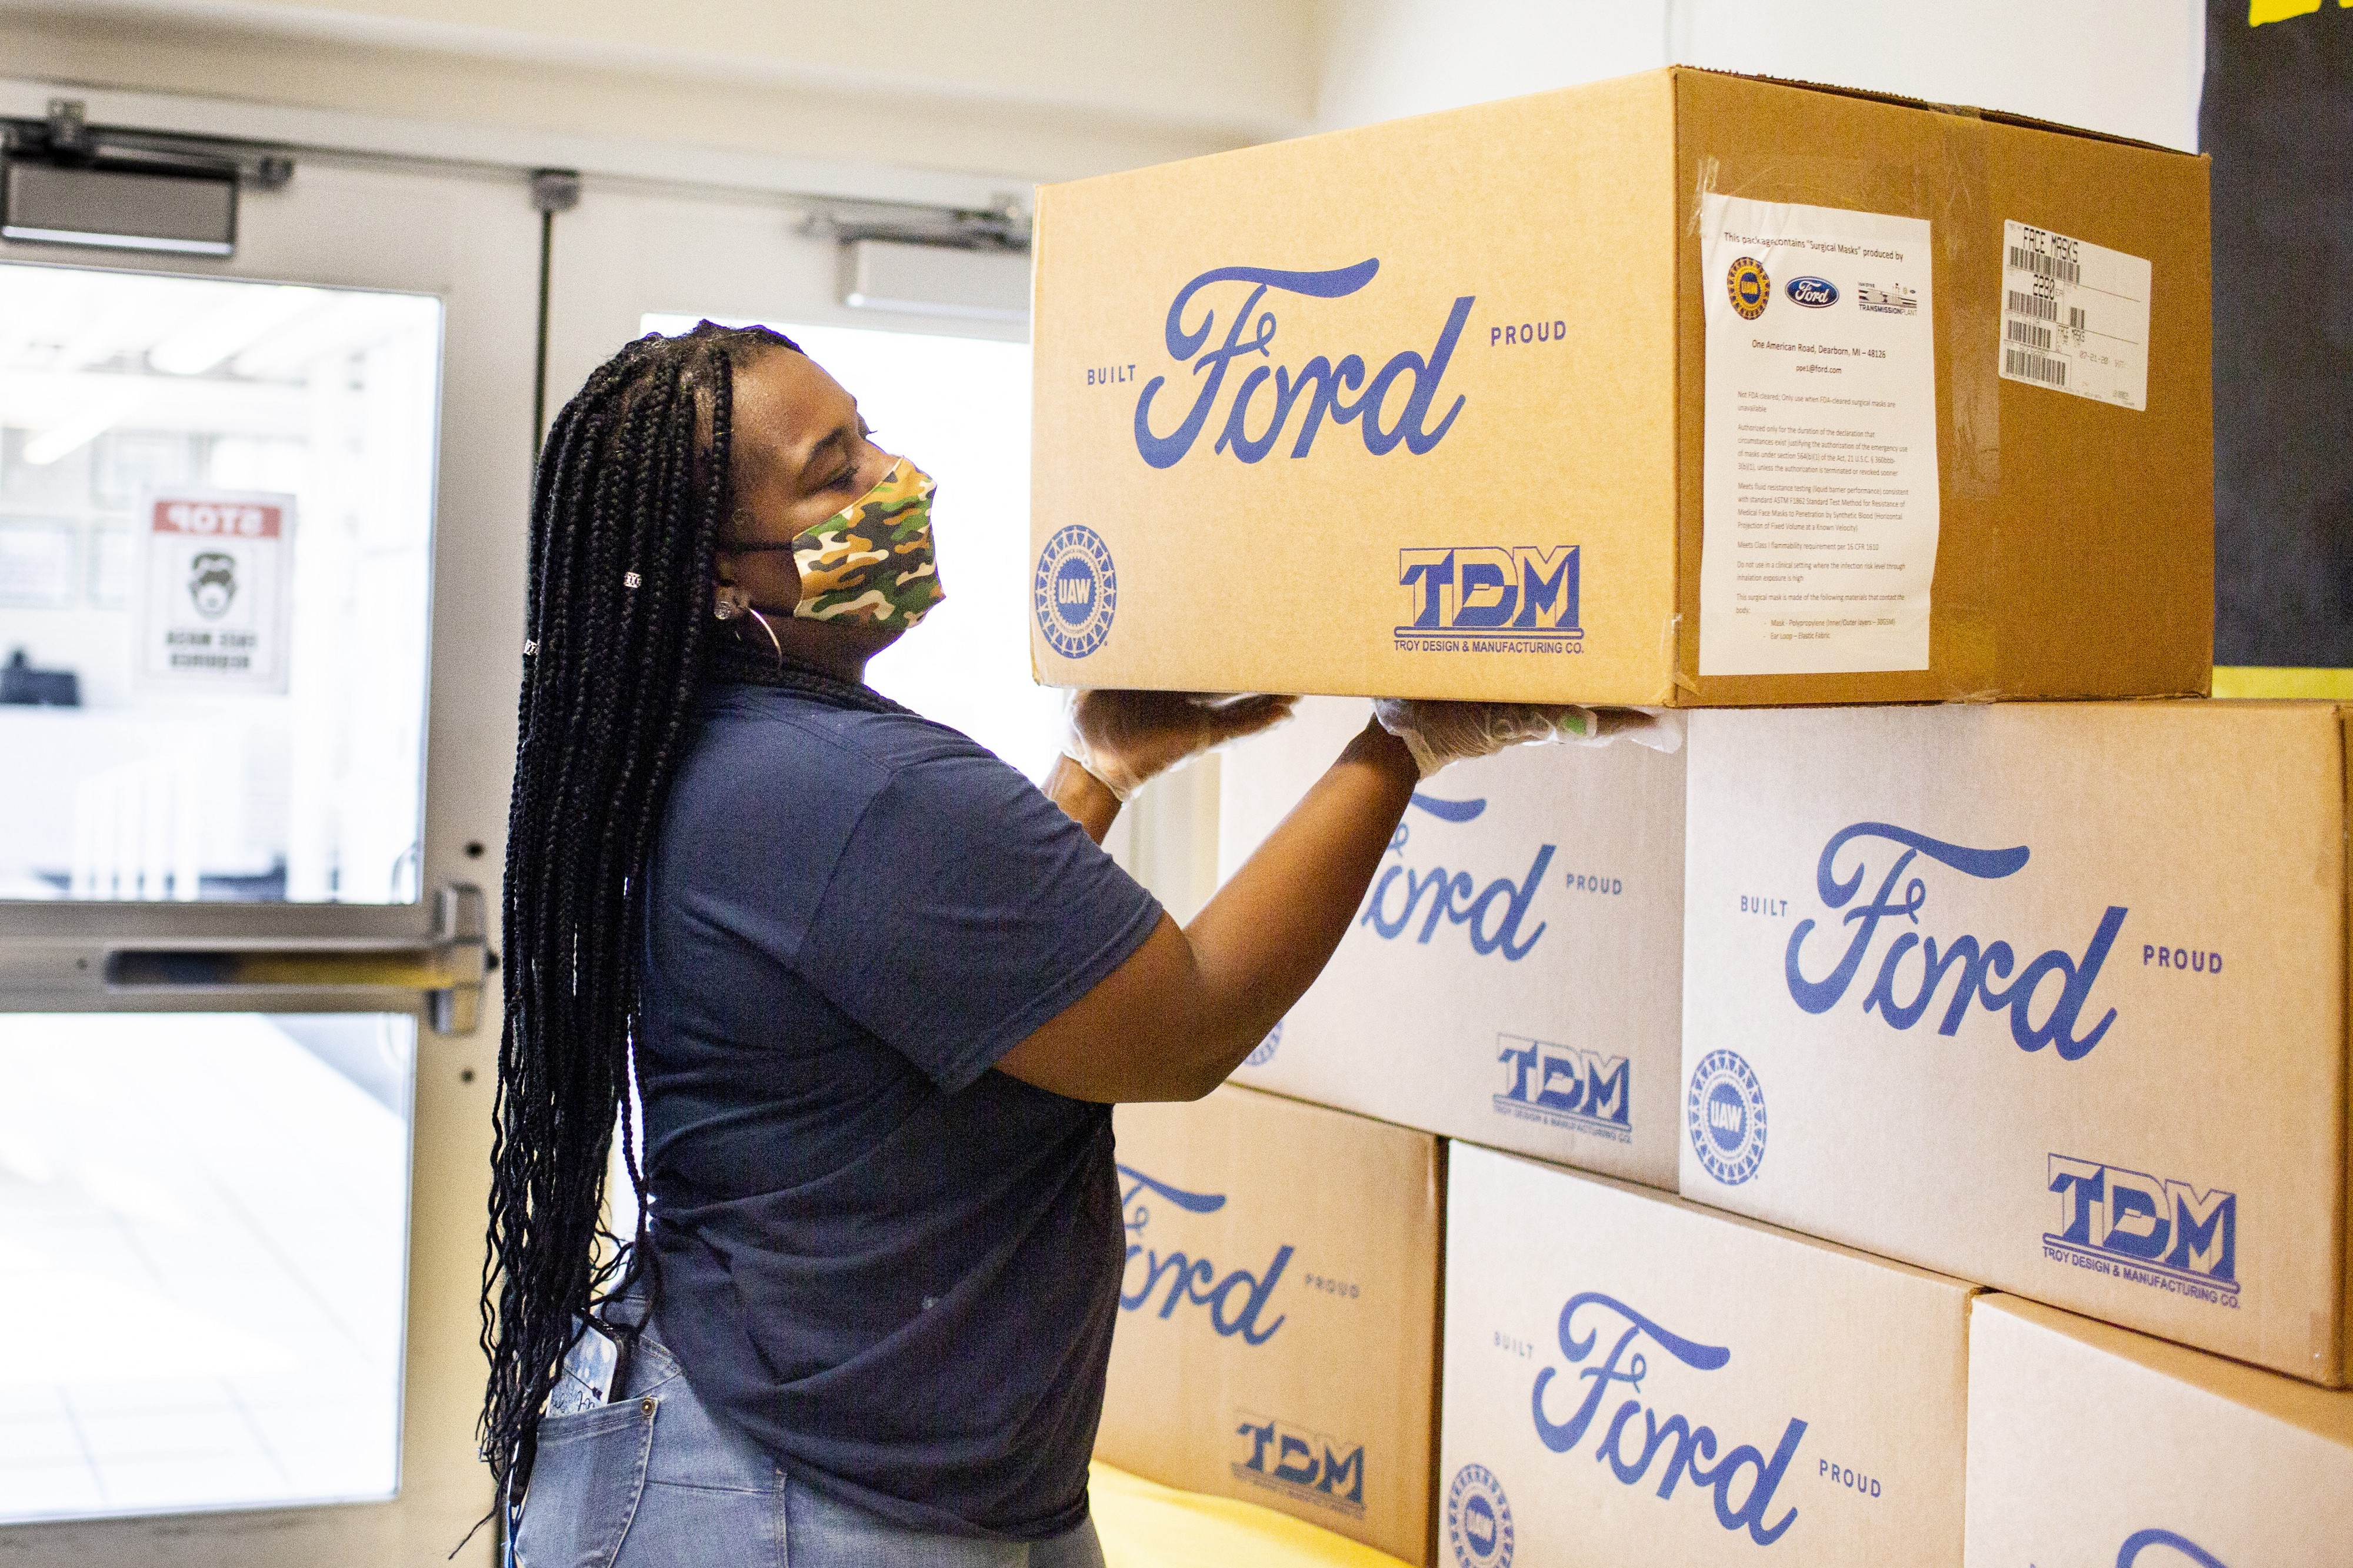 Female Ford employee inspecting Ford boxes